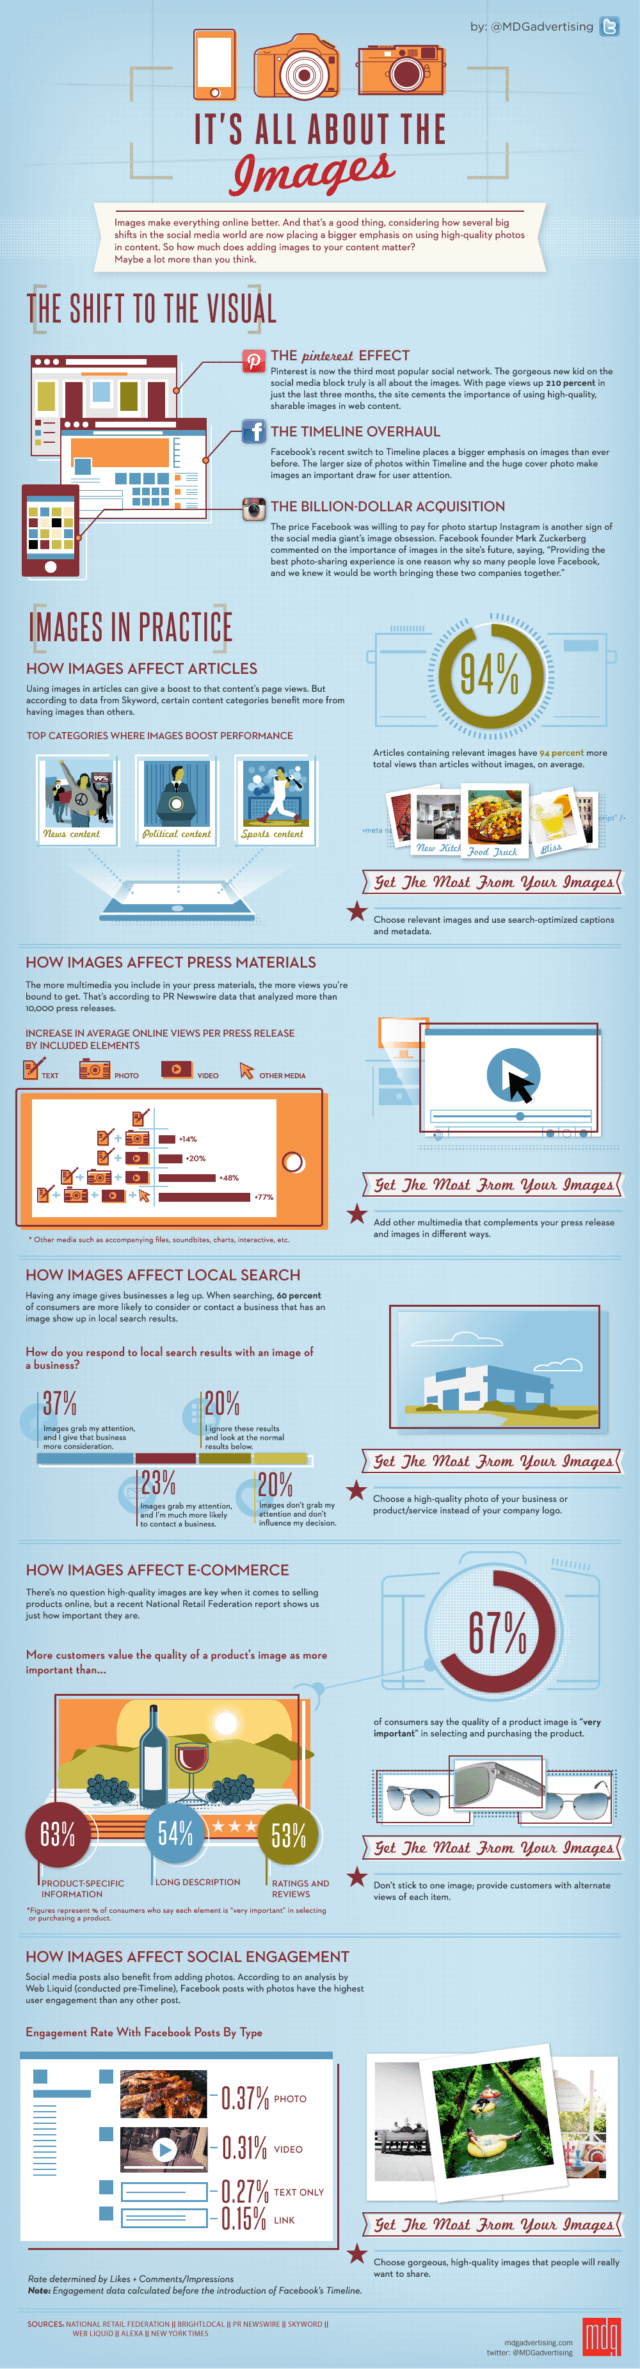 its all about images infographic 1000